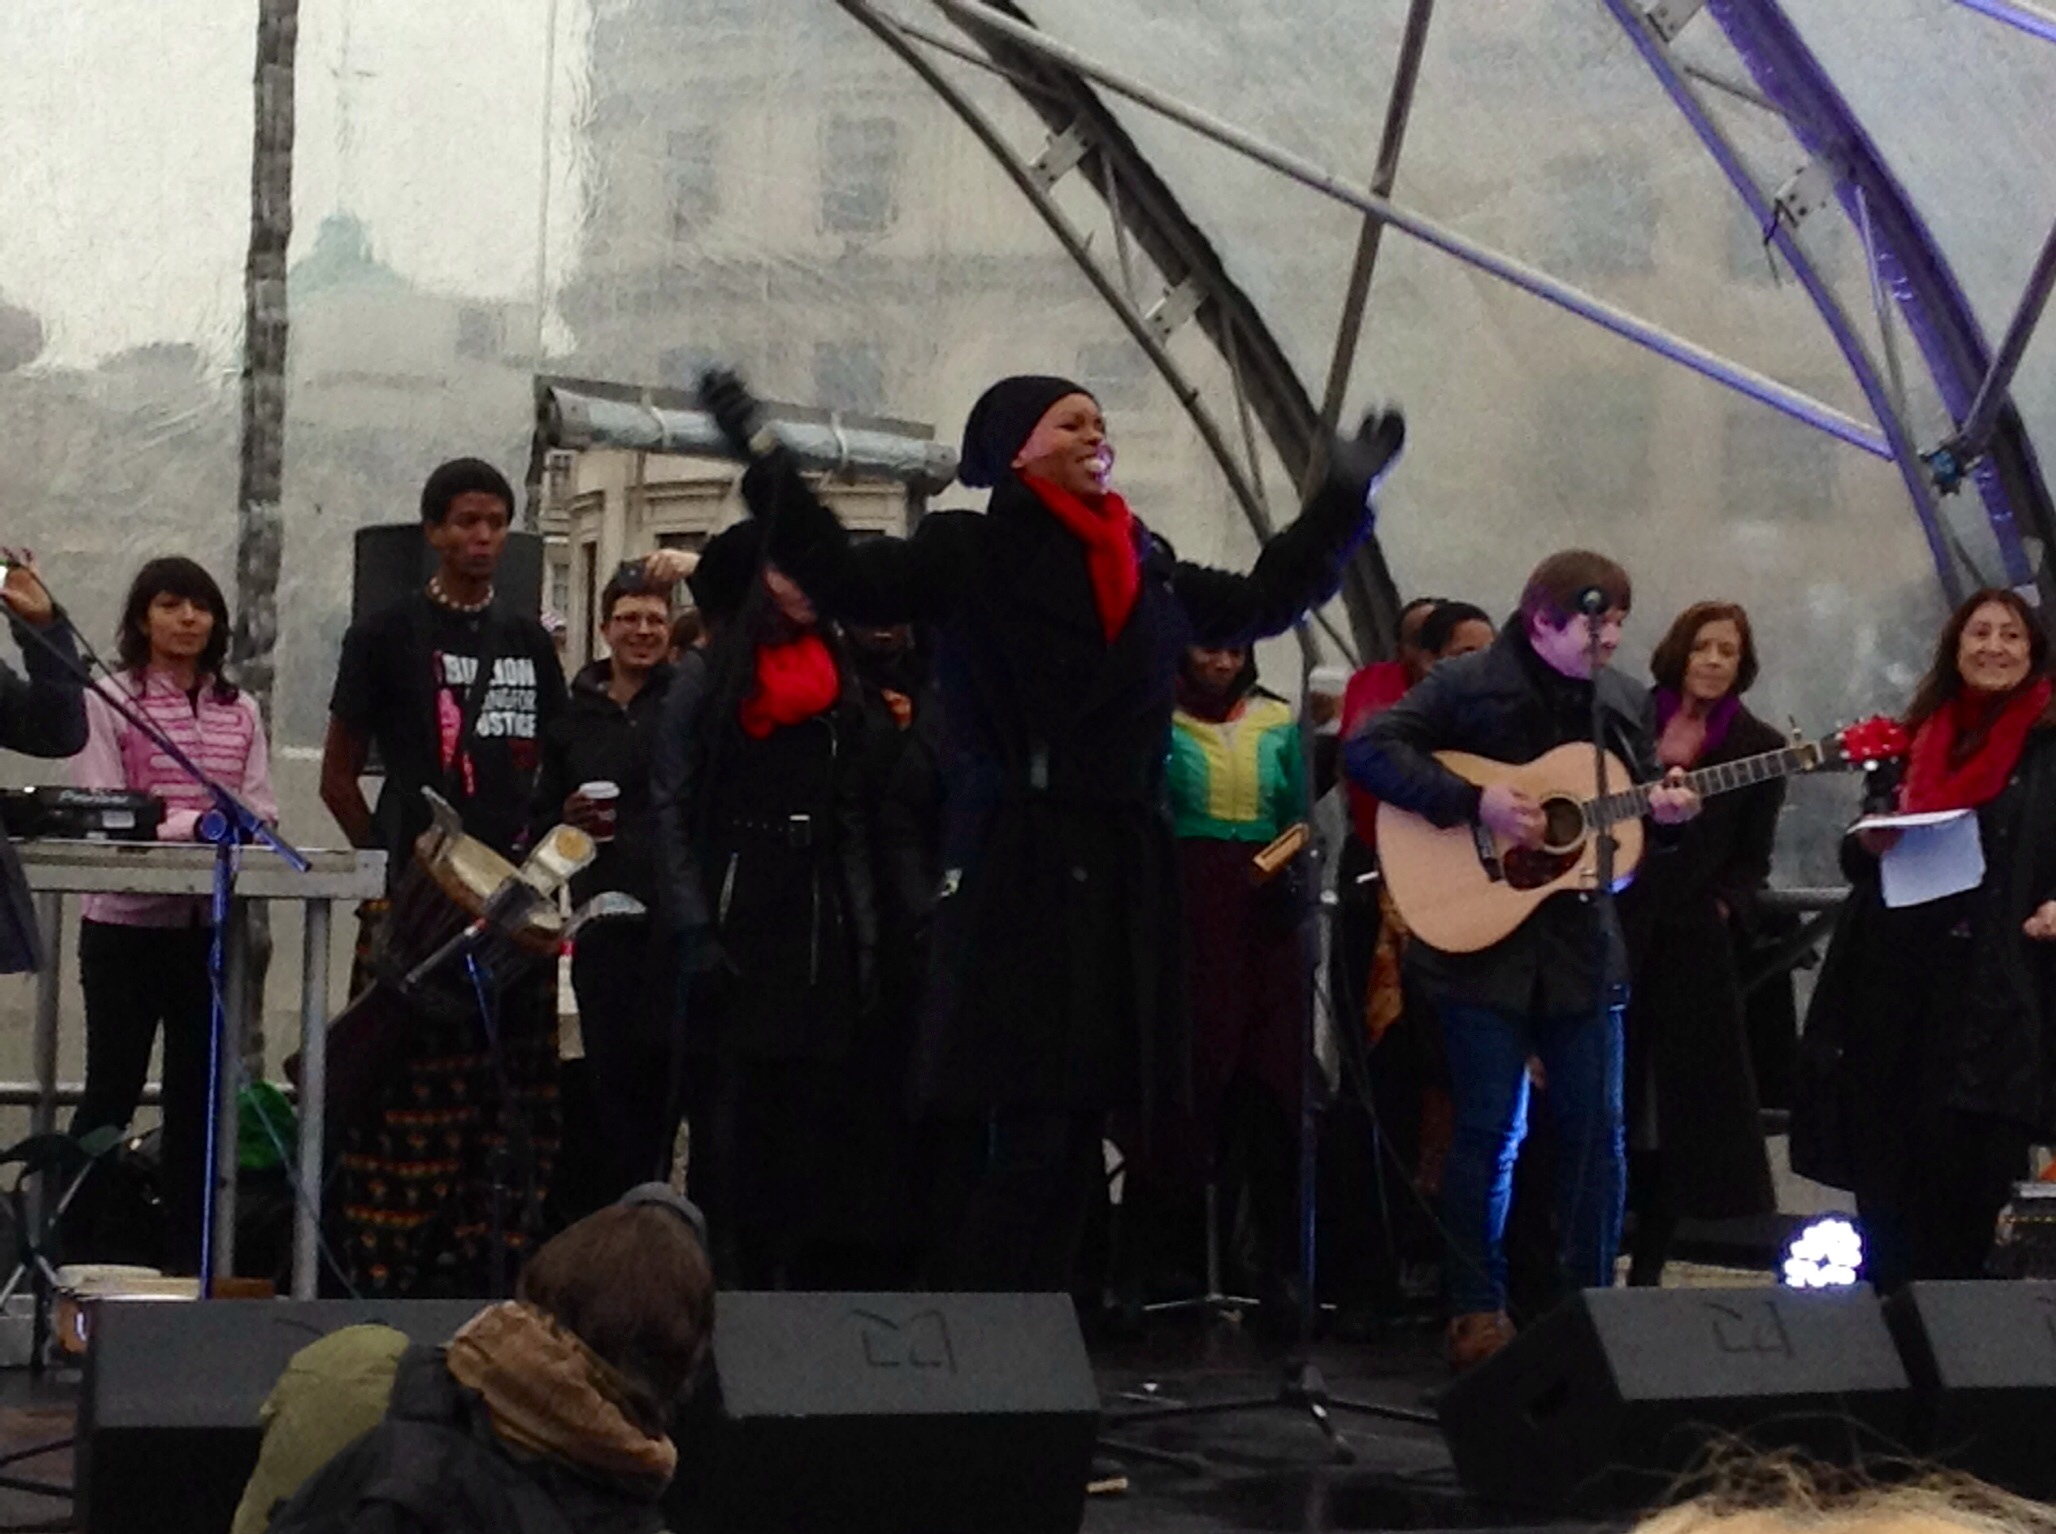 Skin of Skunk Anansie supports + performs live for 1 Billion Rising UK in London